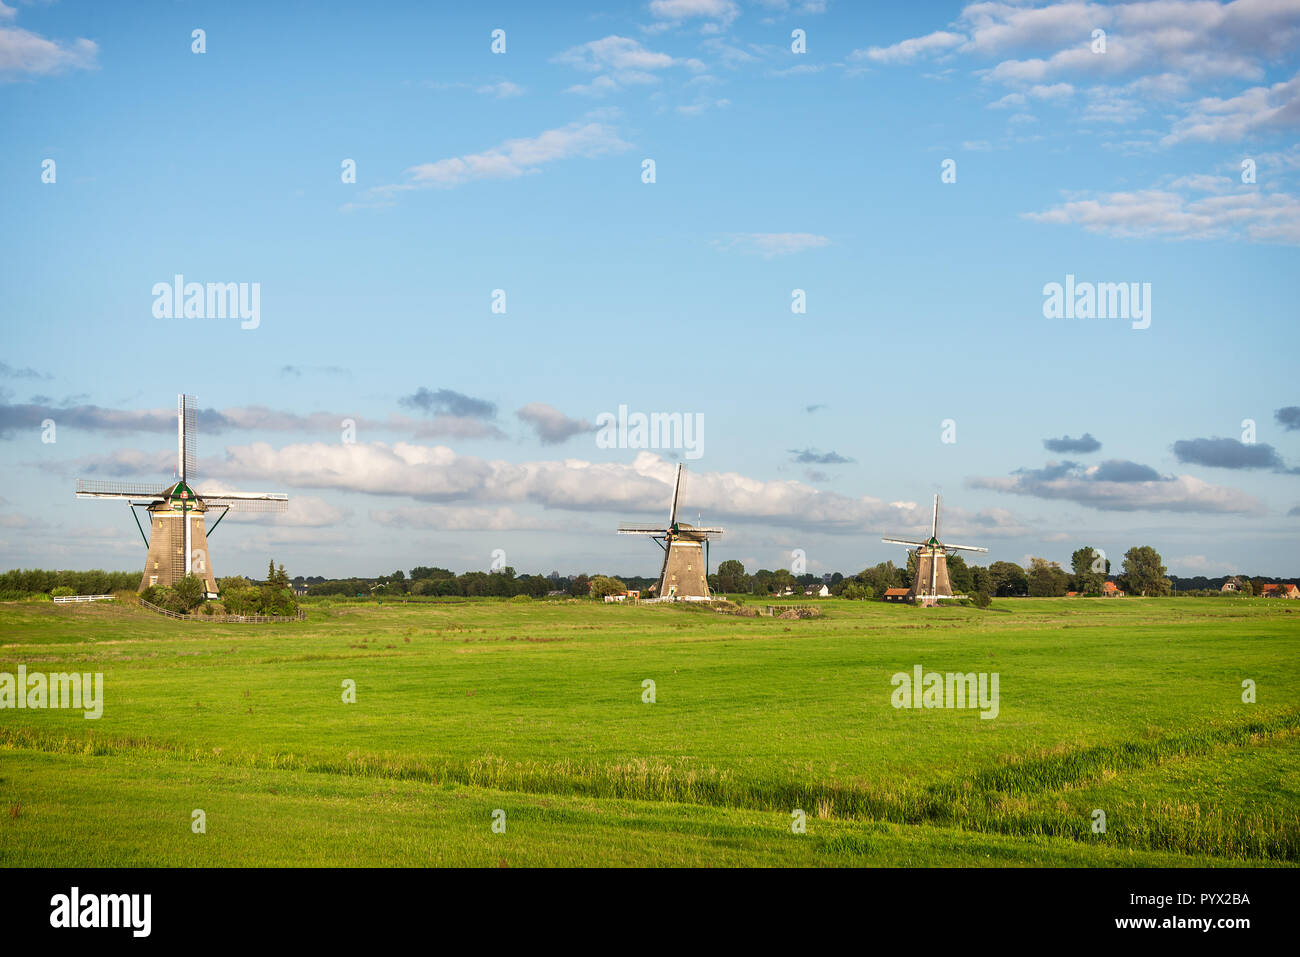 Three windmills in a dutch countryside landscape with pastureland in the polder near Stompwijk, the Netherlands. - Stock Image